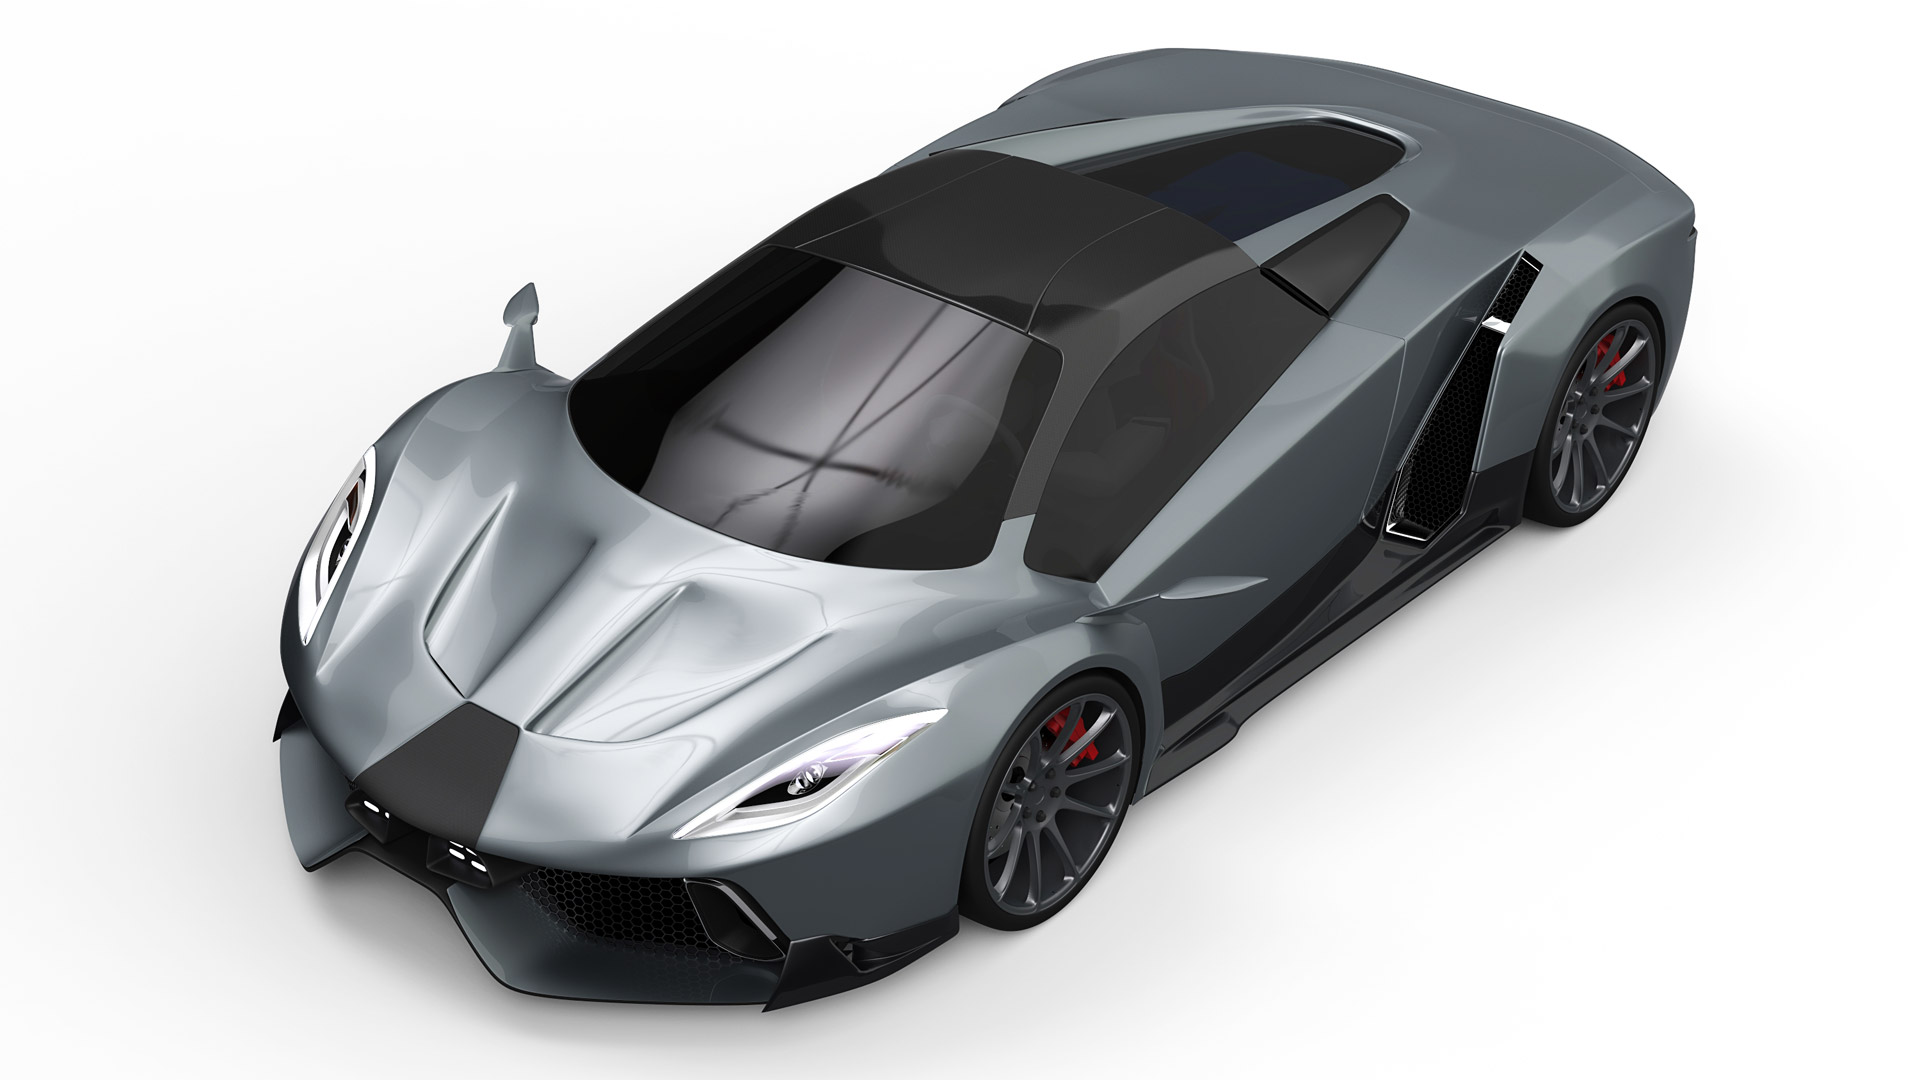 PSC Reveals Hybrid Supercar, Raises Claimed Output To 2,400 Horsepower